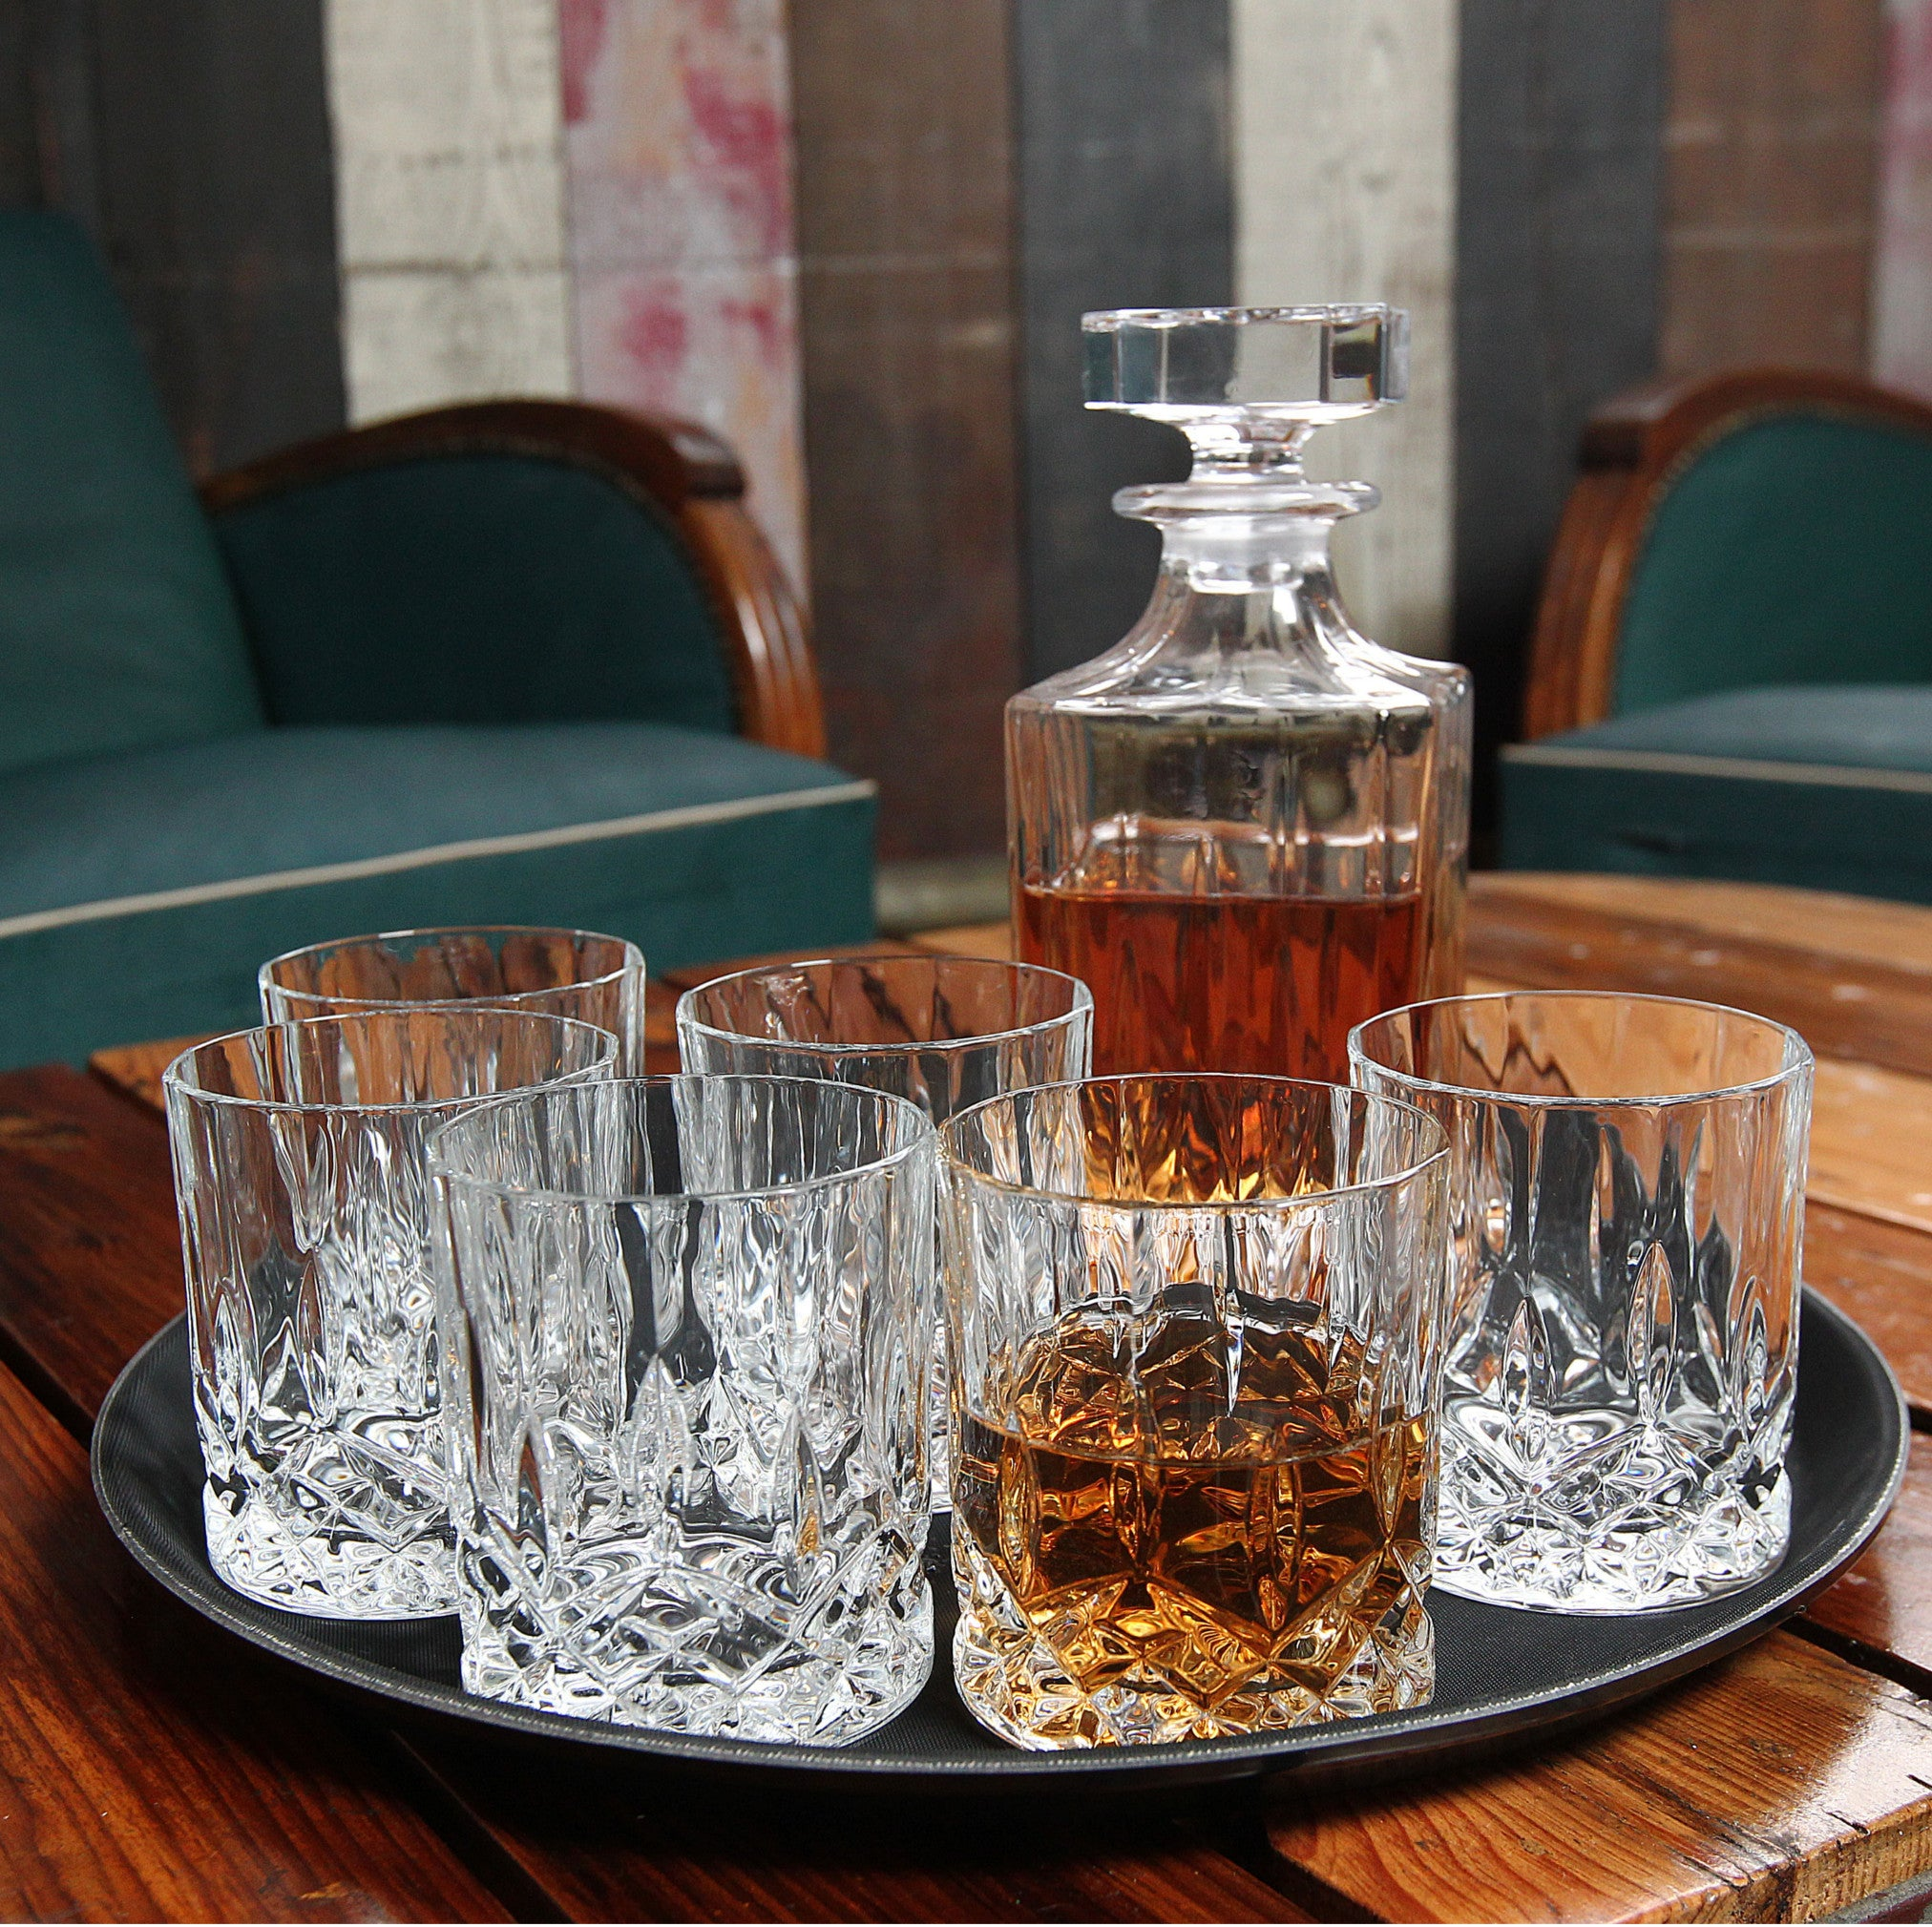 Terrific 7Pcs Temple Bar Whisky Spirit Decanter Set Tray Included Home Interior And Landscaping Ologienasavecom